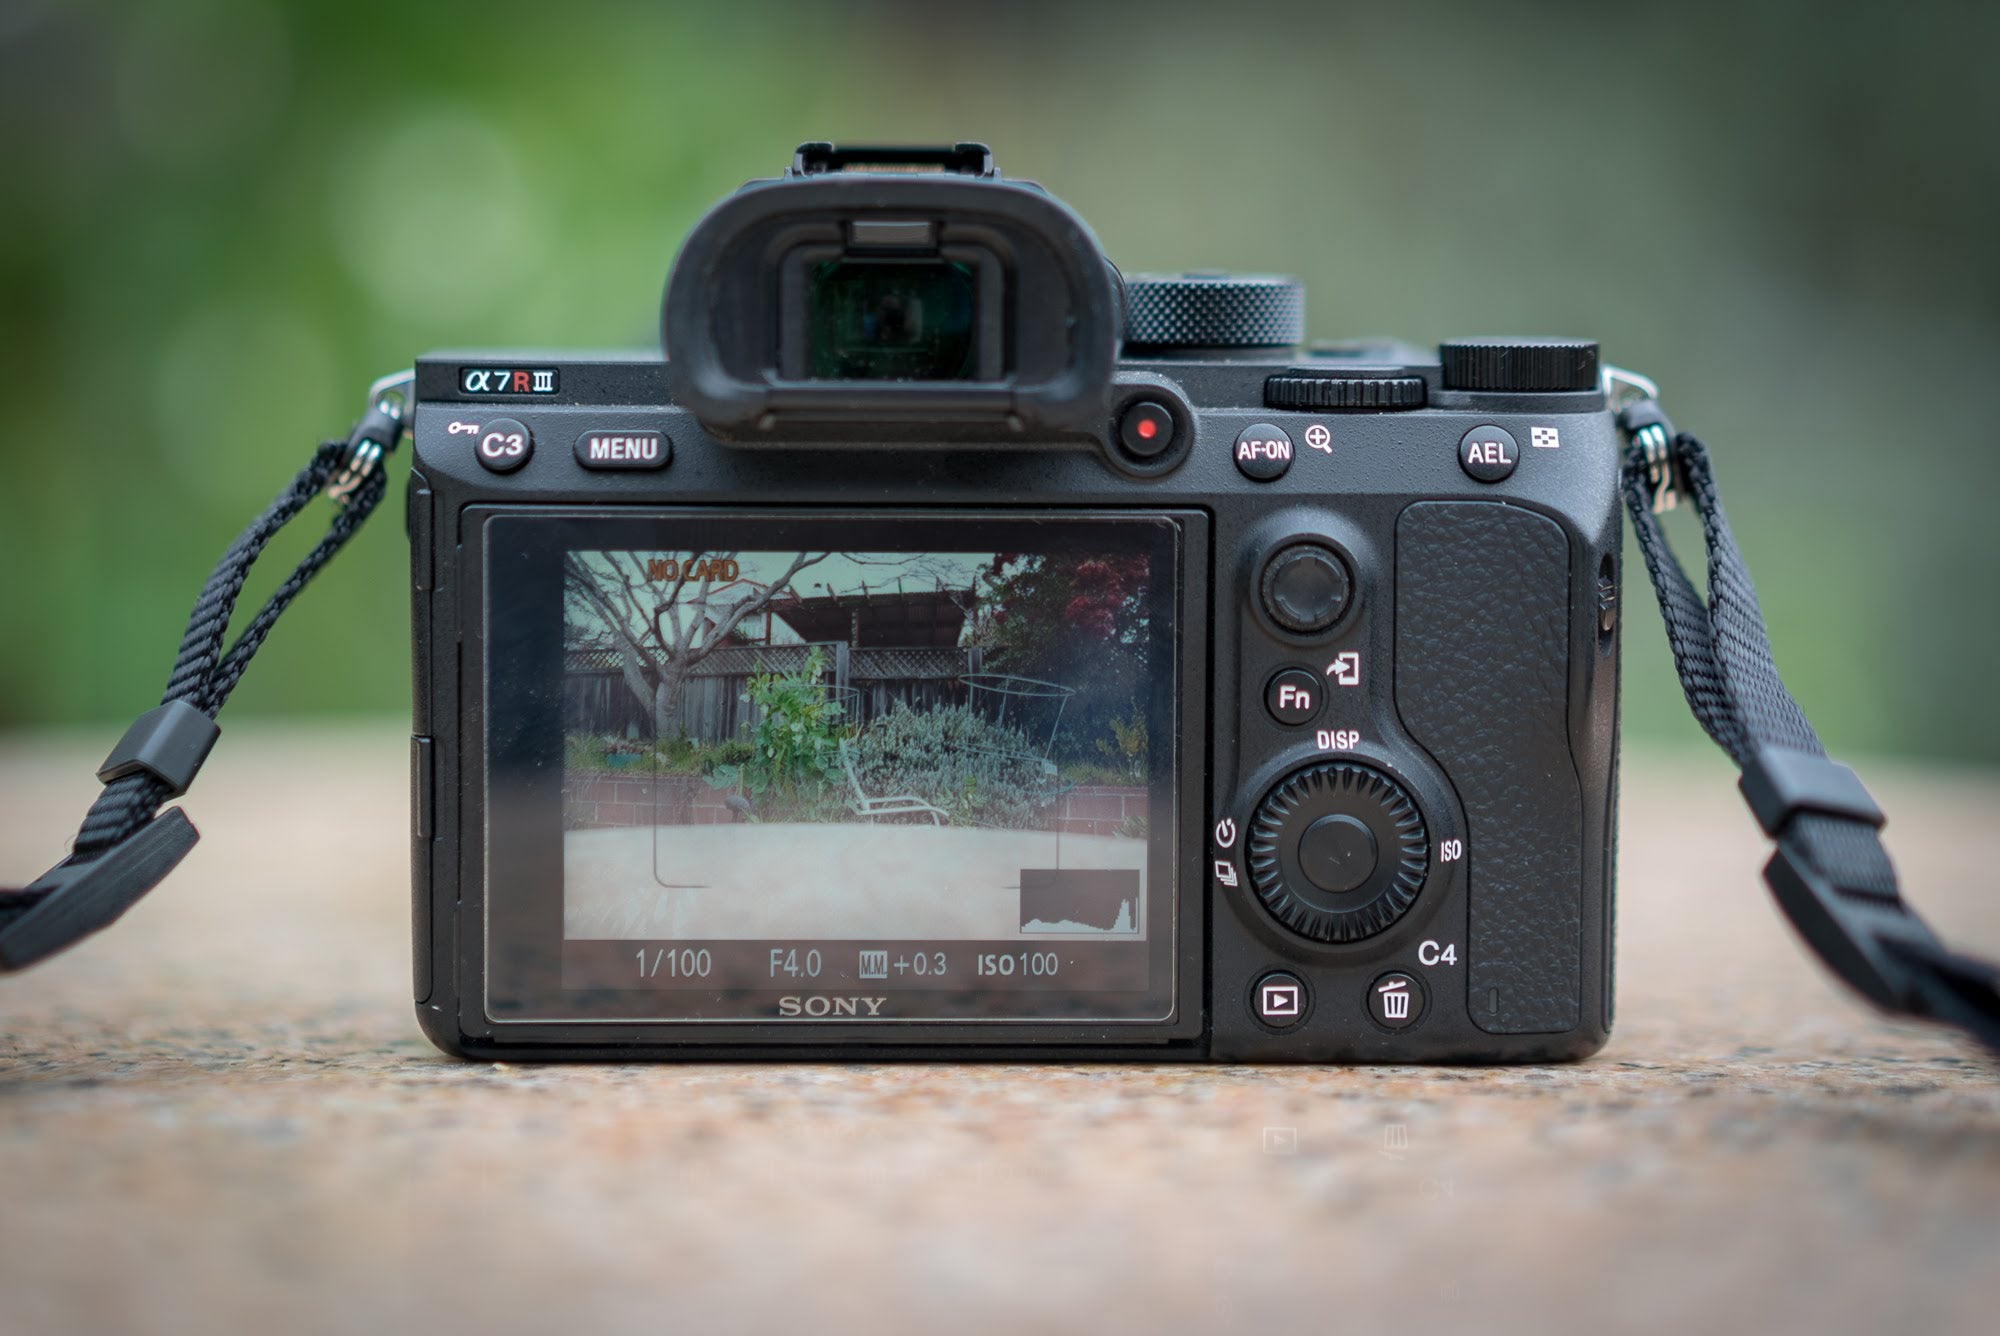 Sony A7R III Review: The New King Of Mirrorless Cameras